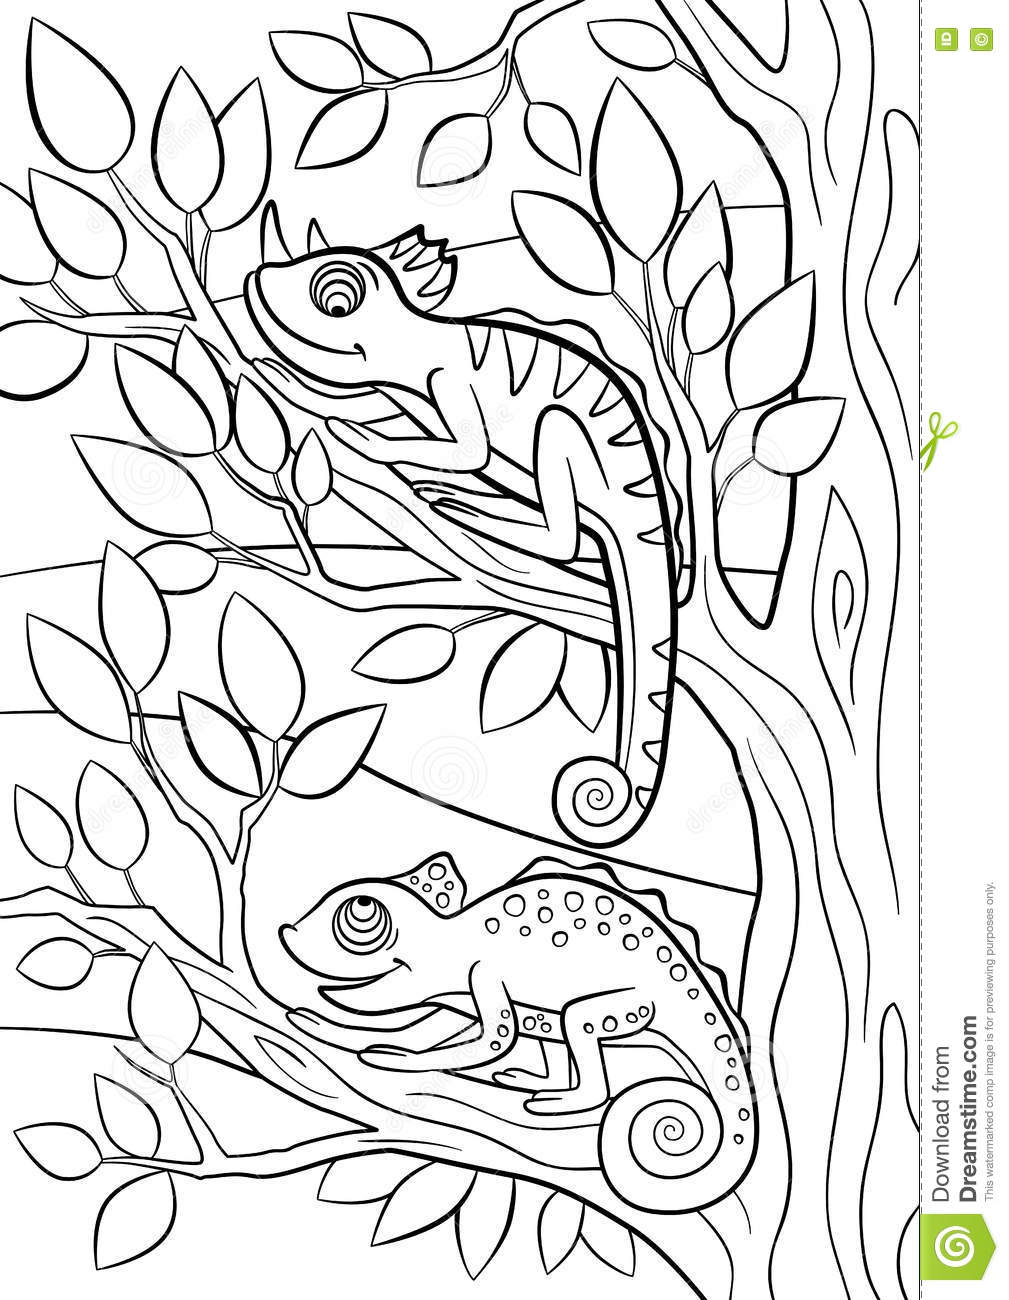 Coloring pages wild animals two little cute chameleon Crazy animals coloring book